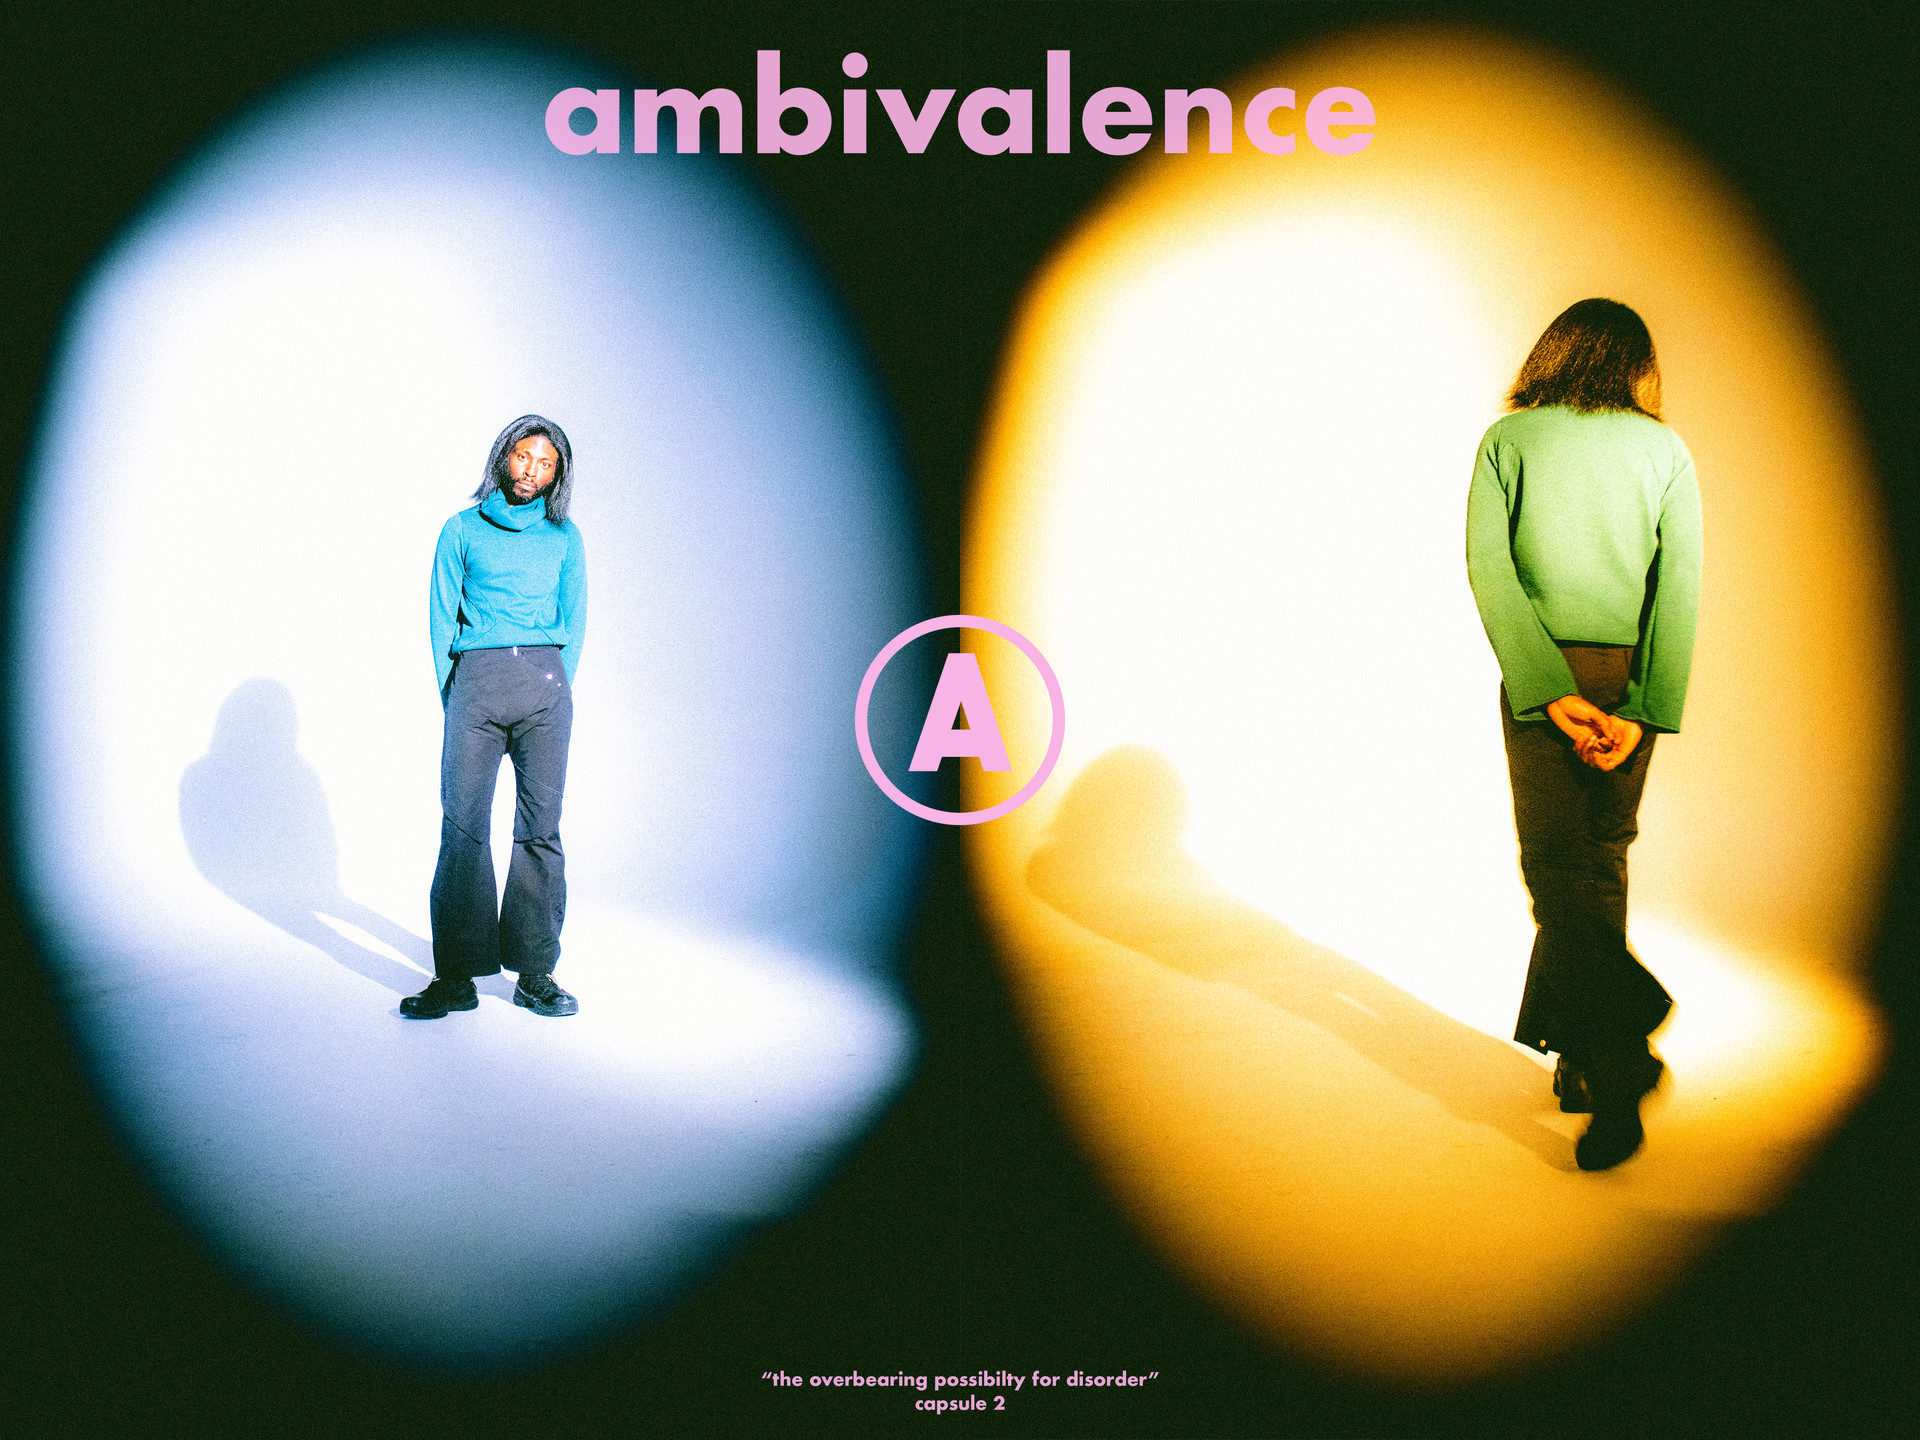 ambivalence capsule 2 by liam walsh